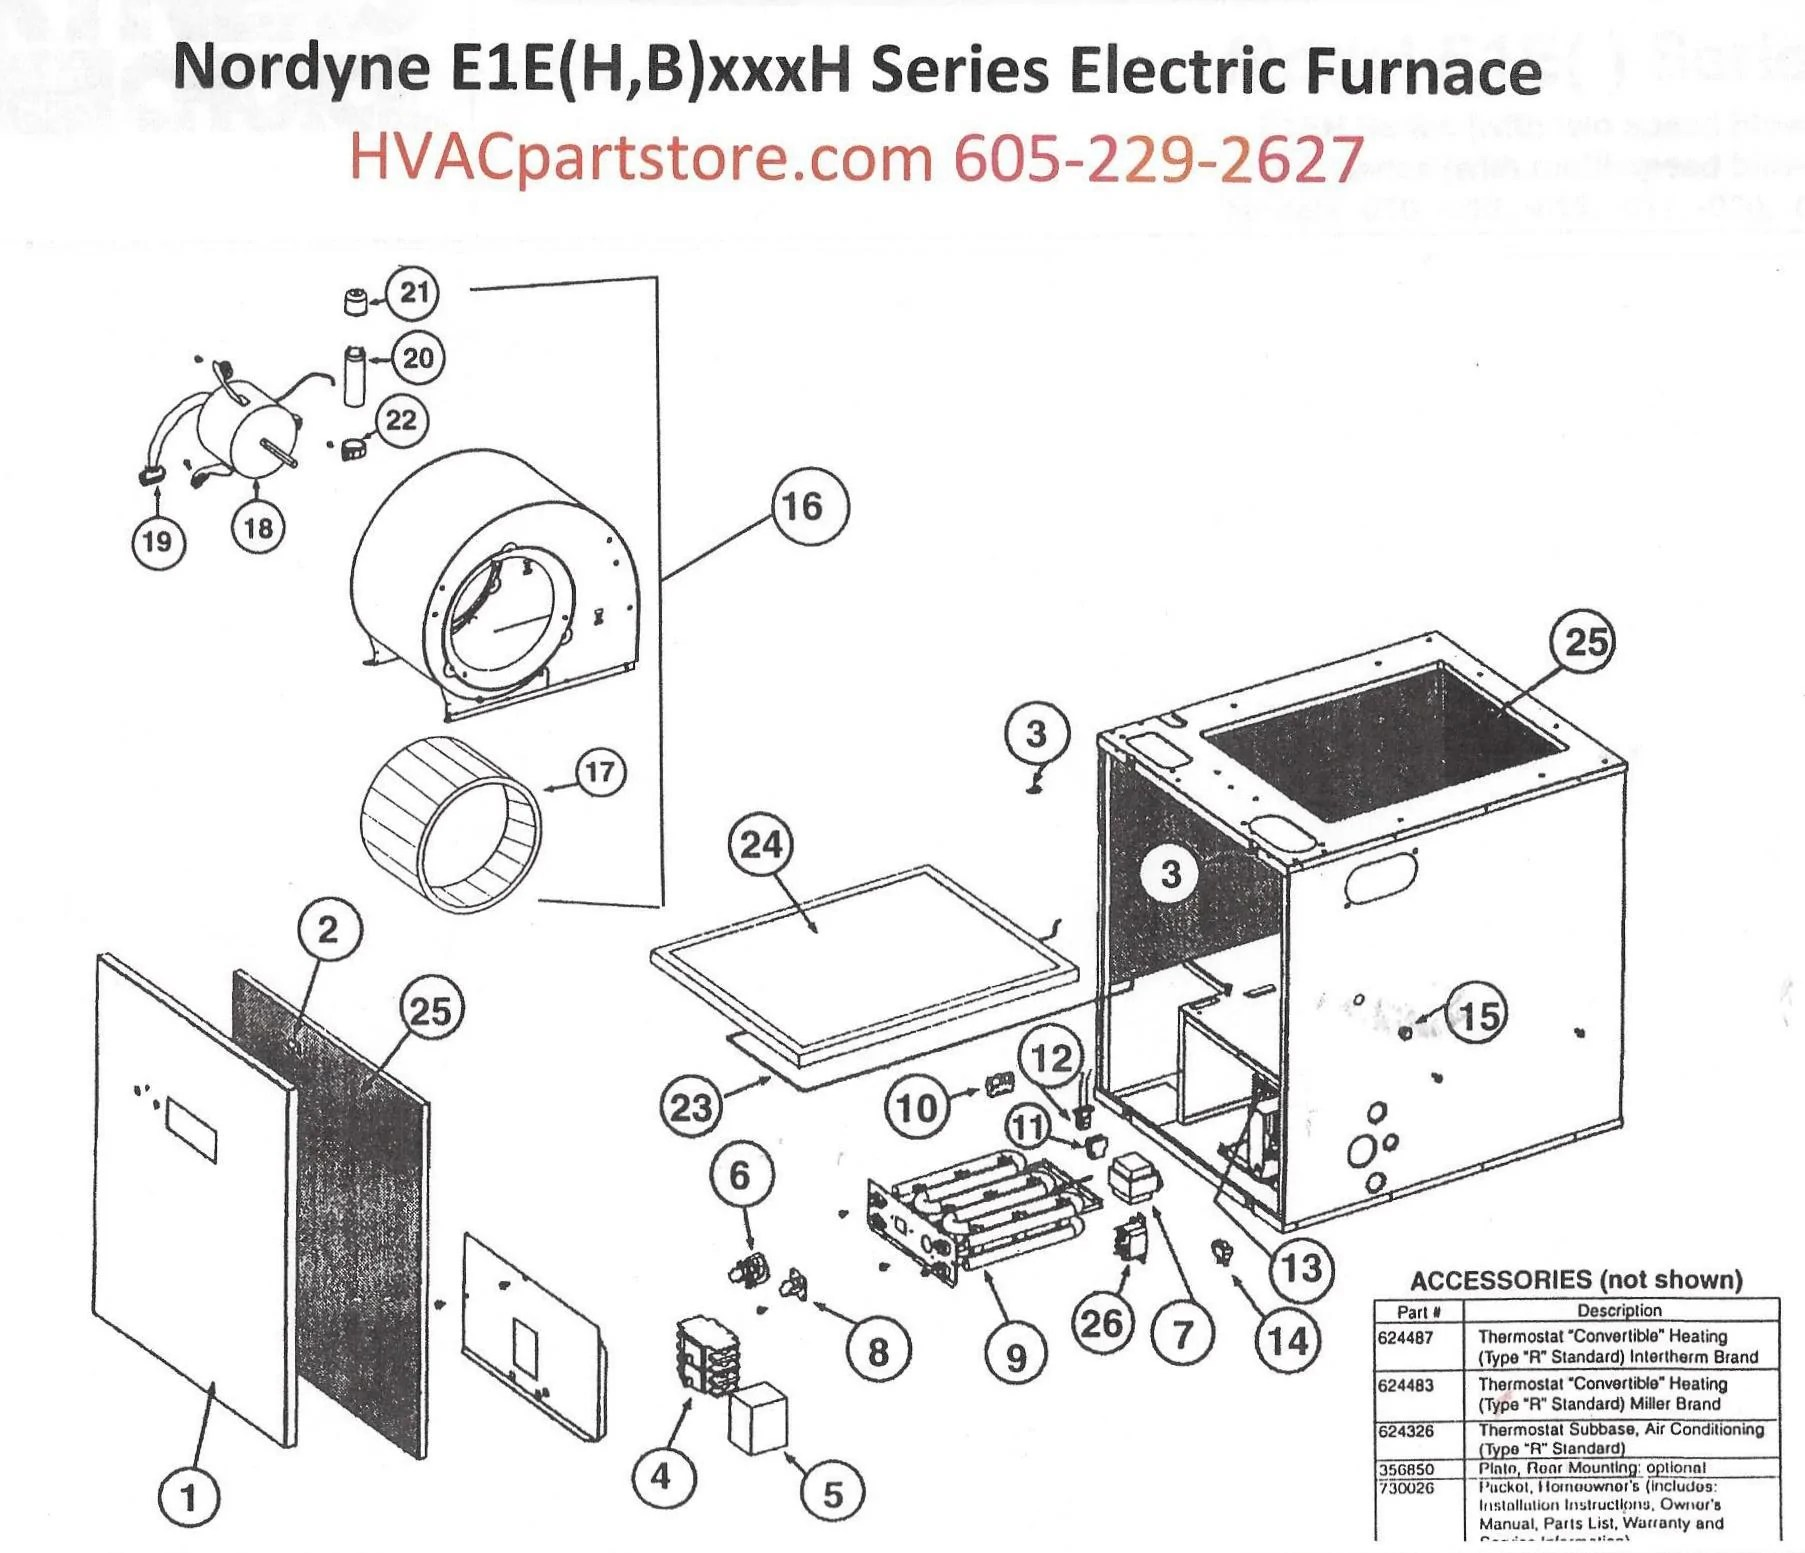 medium resolution of e1eh012h nordyne electric furnace parts